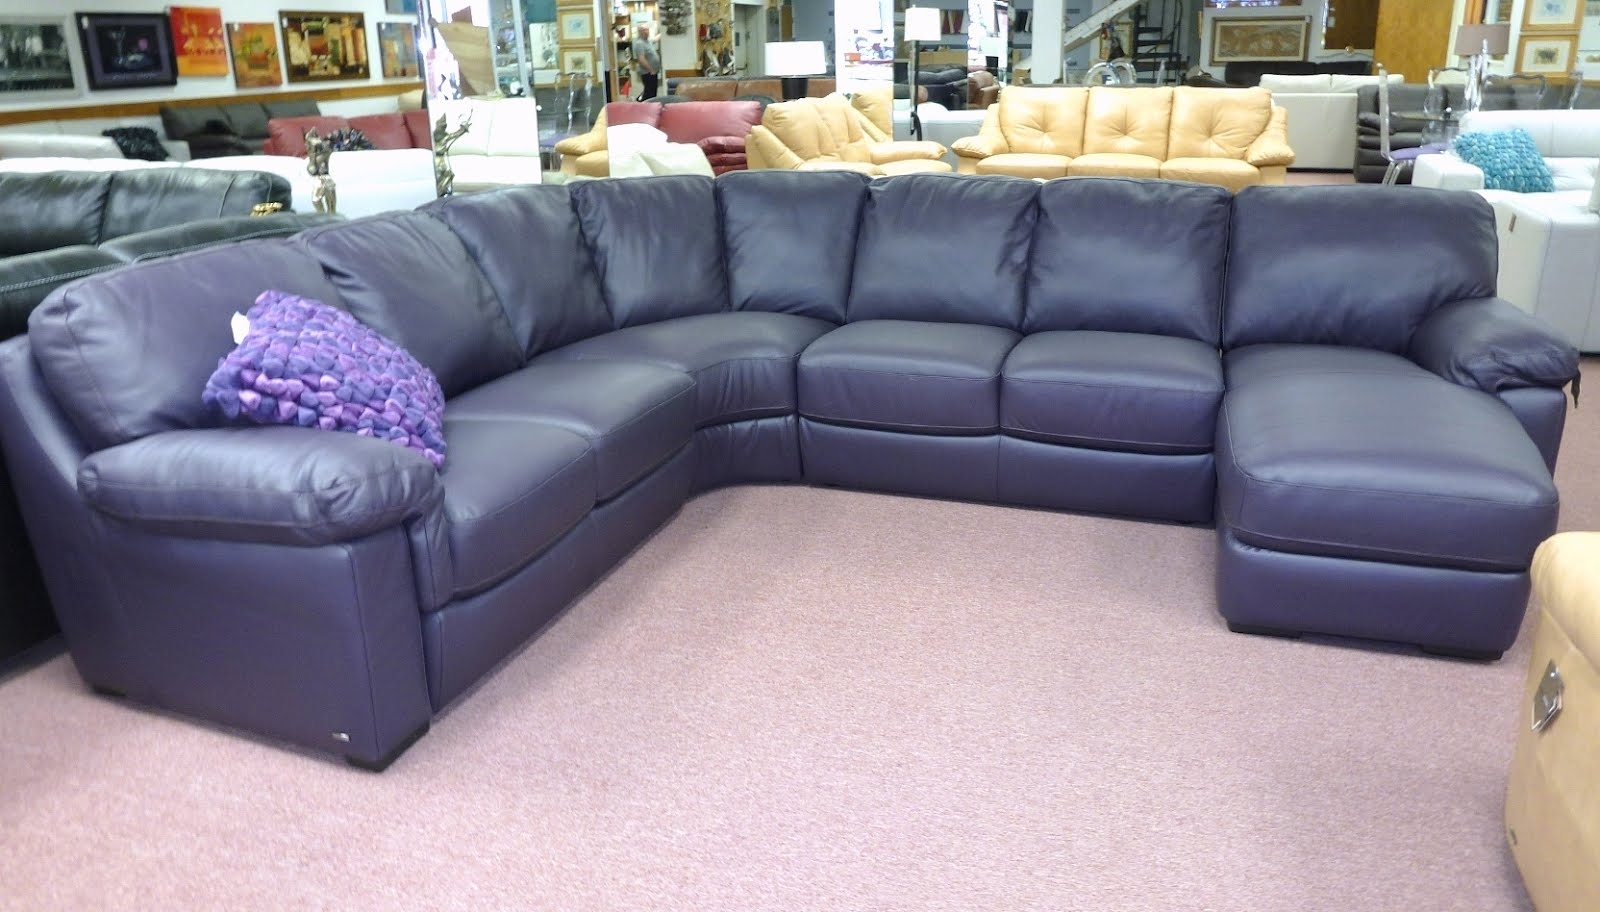 Astounding Eggplant Sectional Sofa 62 For Convertible Sectional Regarding Eggplant Sectional Sofa (#1 of 12)